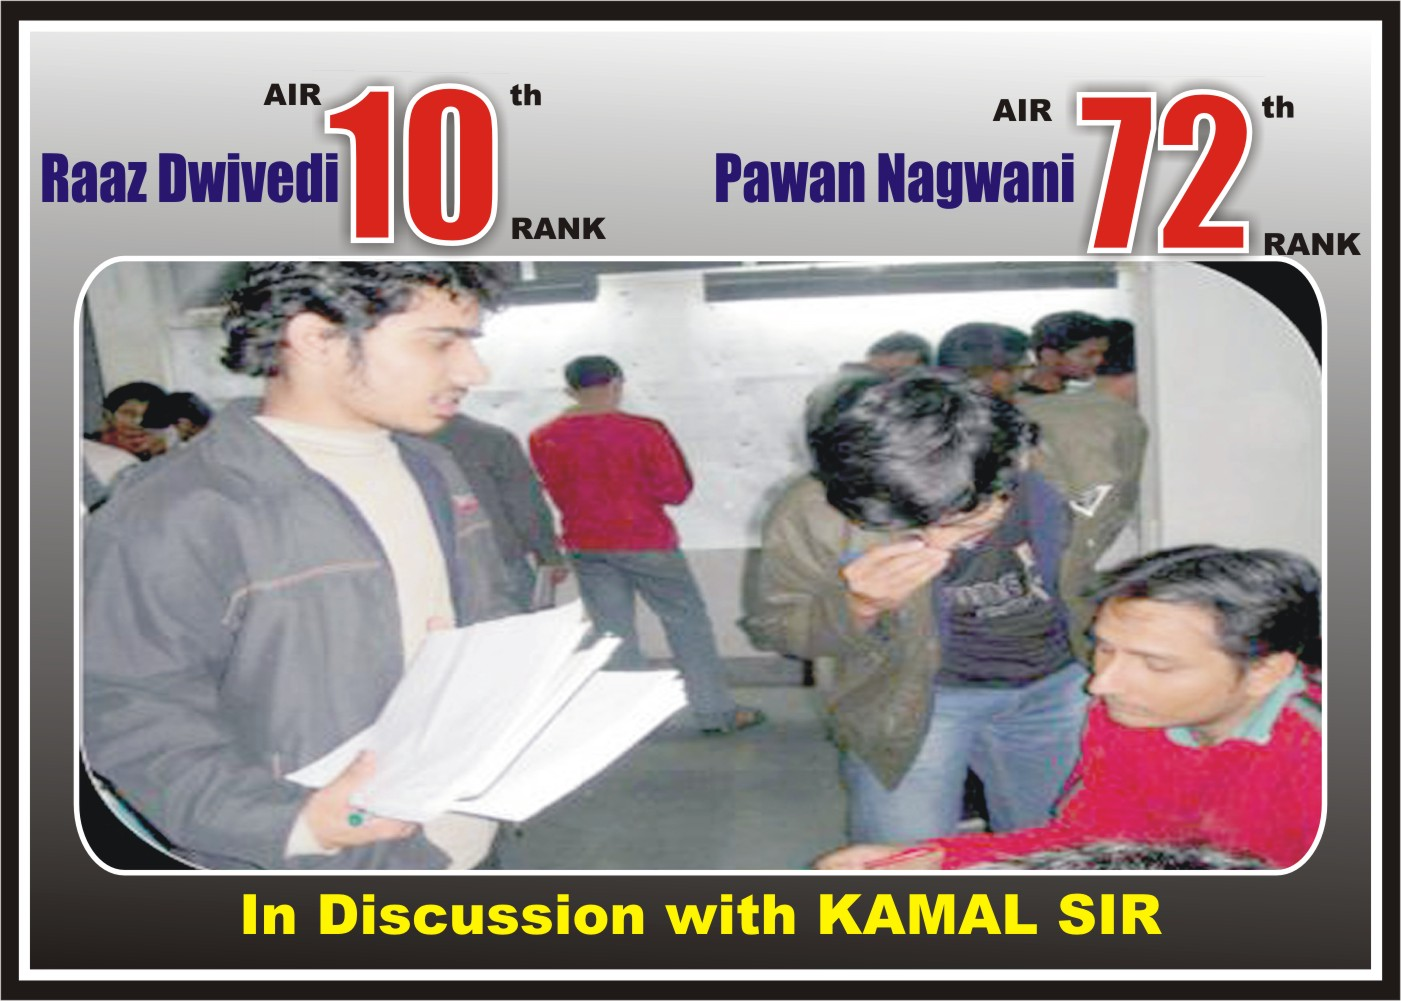 kamal sir in discussion with his students